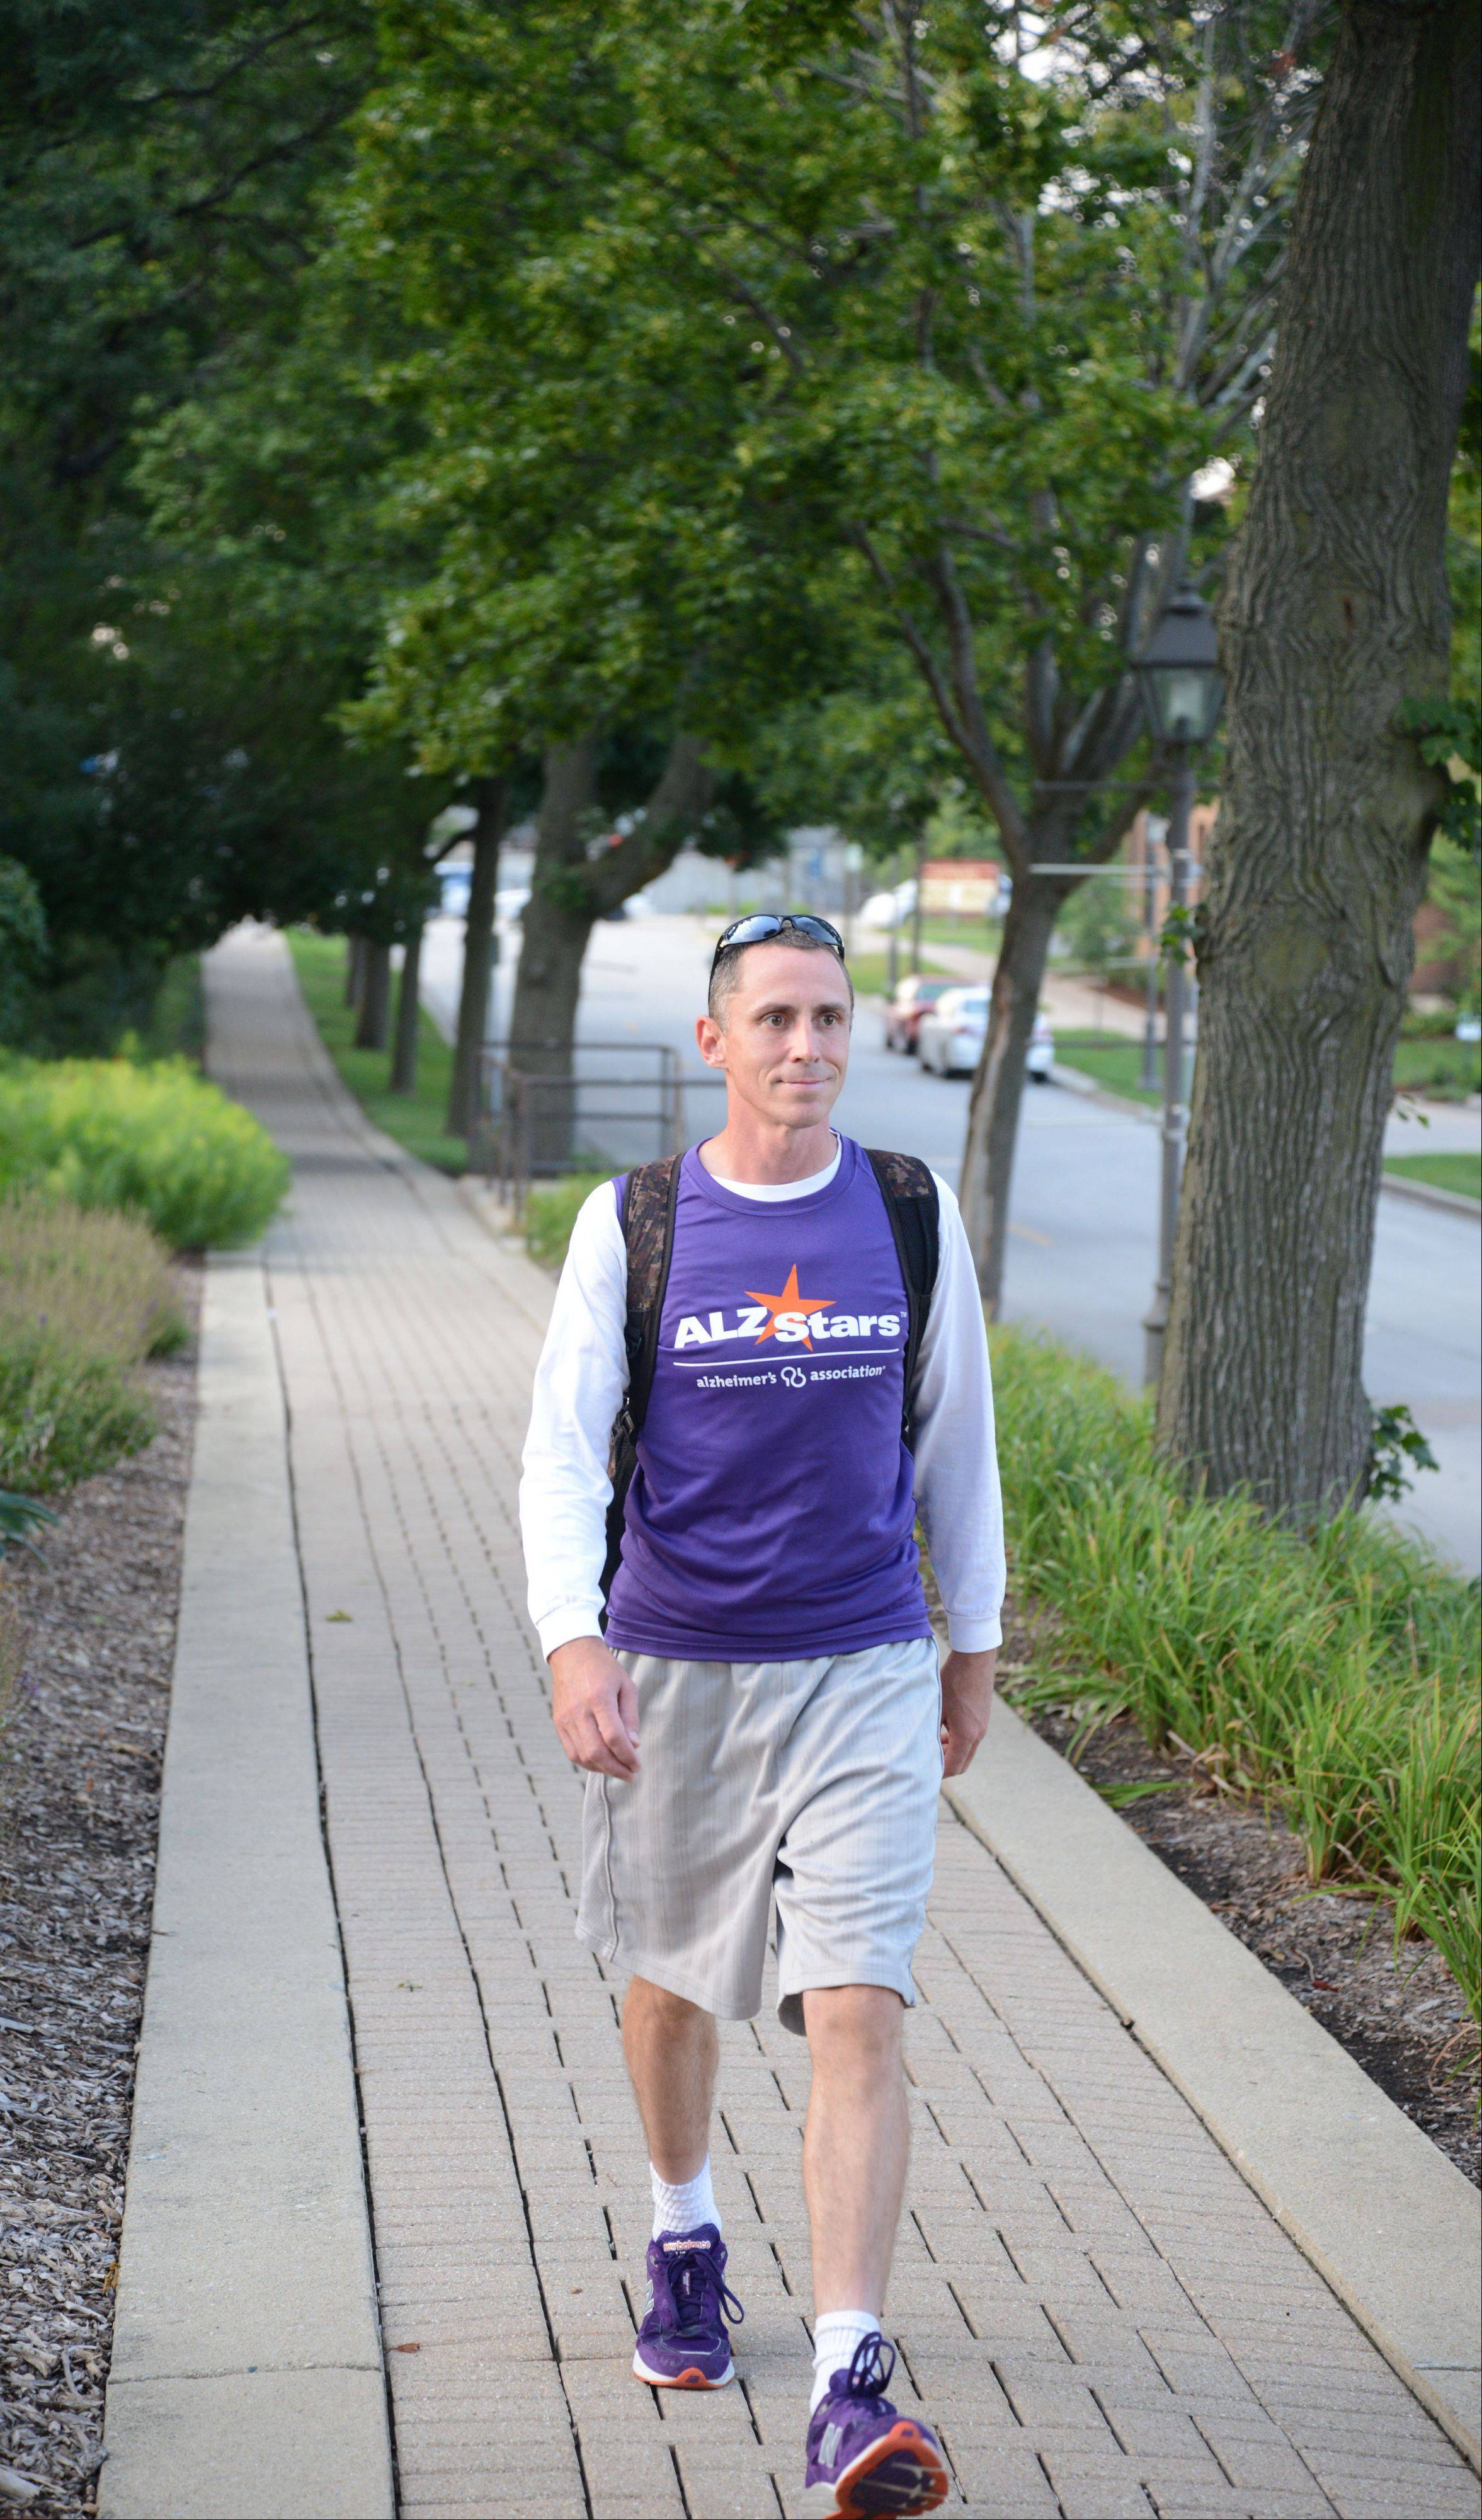 William Glass of Lombard begins a 750-mile walking trek Monday to Atlanta, Ga., to raise funds for Alzheimer's research and tell as many people as he can about the disease's devastating effects and societal costs. Glass will walk the entire journey without a support van, carrying a 25-pound backpack with camping gear and everything he needs.